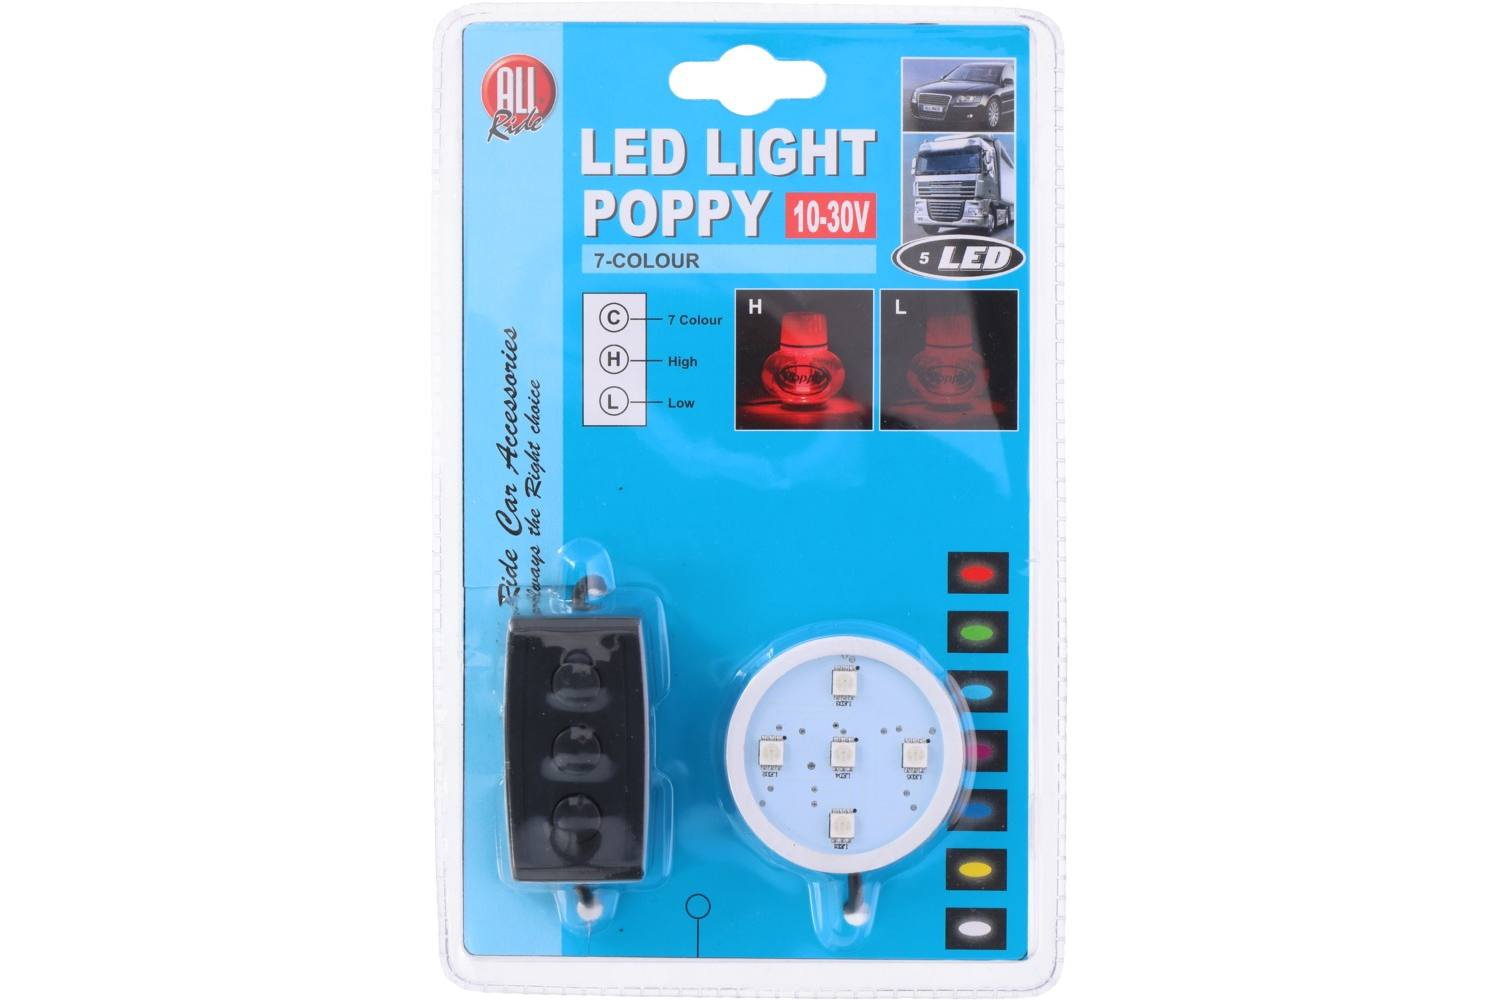 Poppy light, AllRide, LED and Dimmable, 7 colours, 12-24V 1